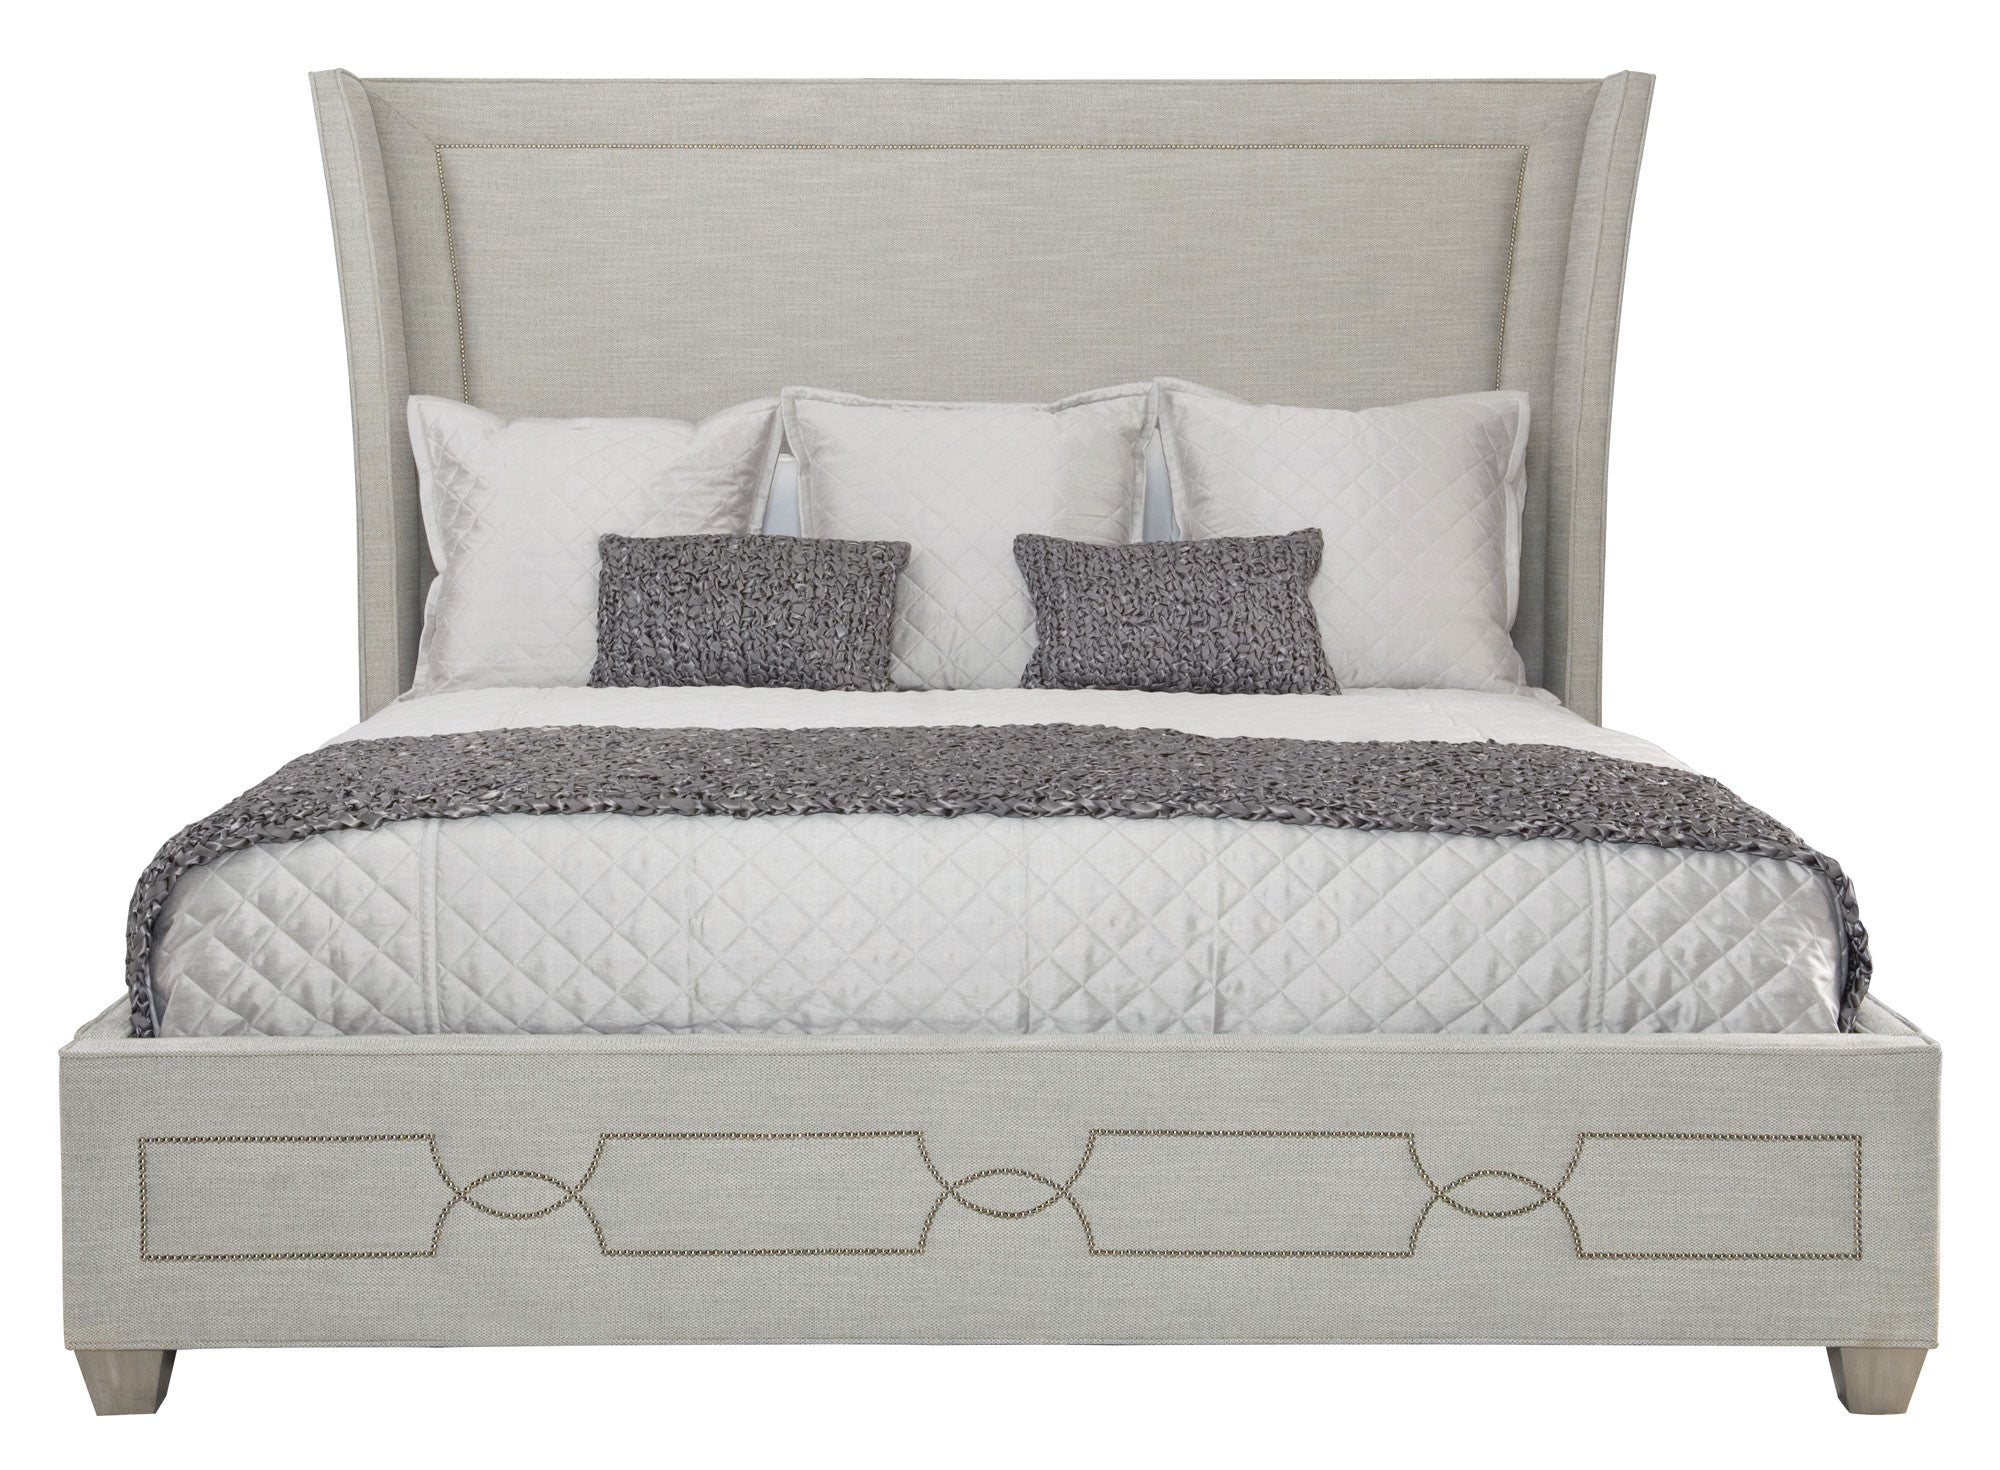 Criteria Upholstered King Bed - Bernhardt Furniture | Luxe ... - photo#19